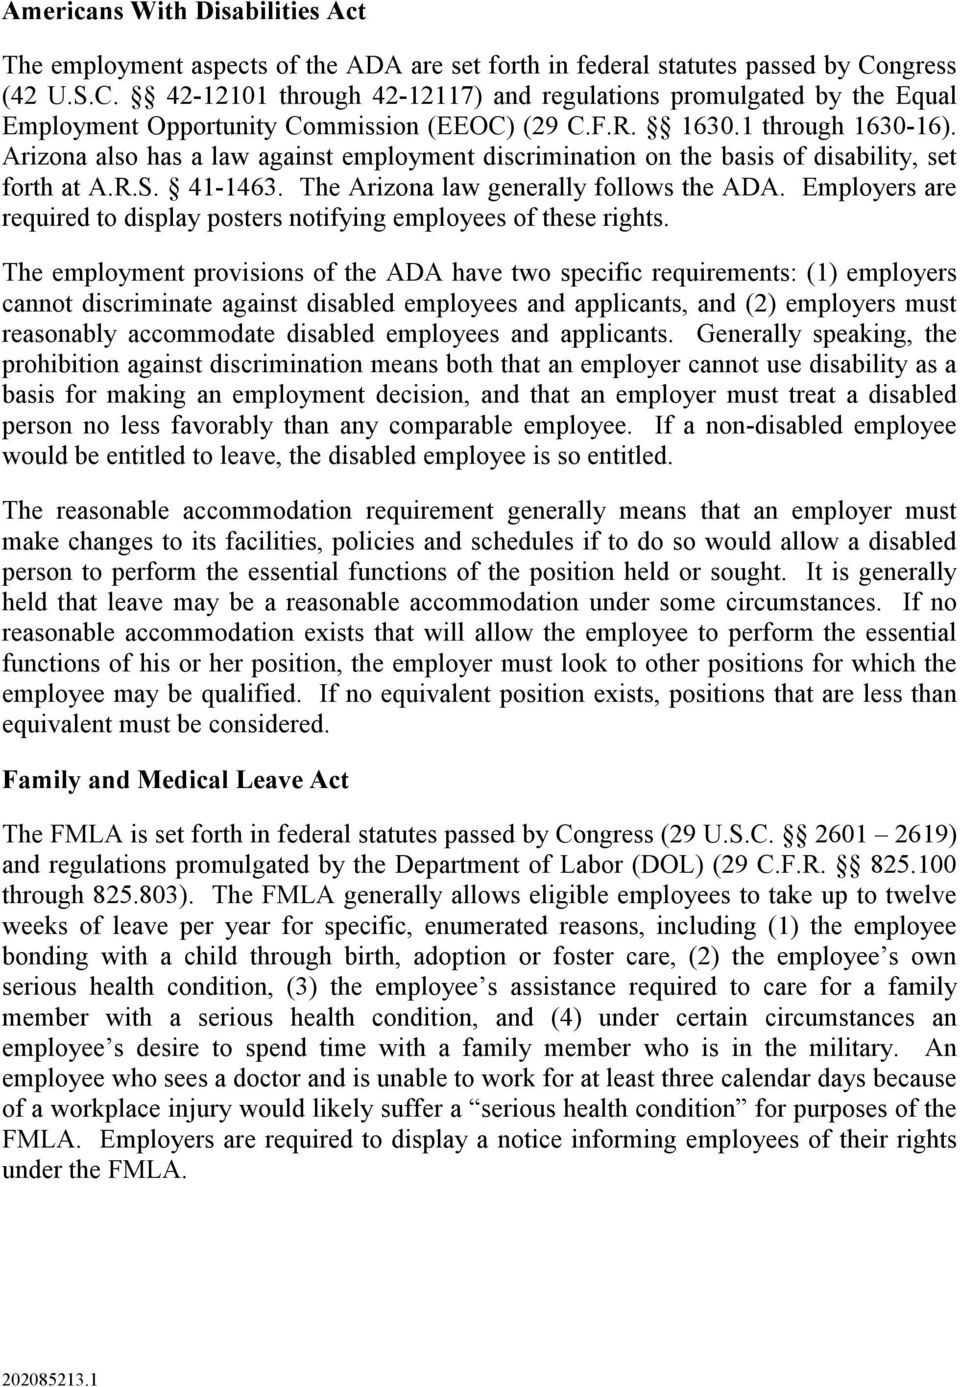 Arizona also has a law against employment discrimination on the basis of disability, set forth at A.R.S. 41-1463. The Arizona law generally follows the ADA.